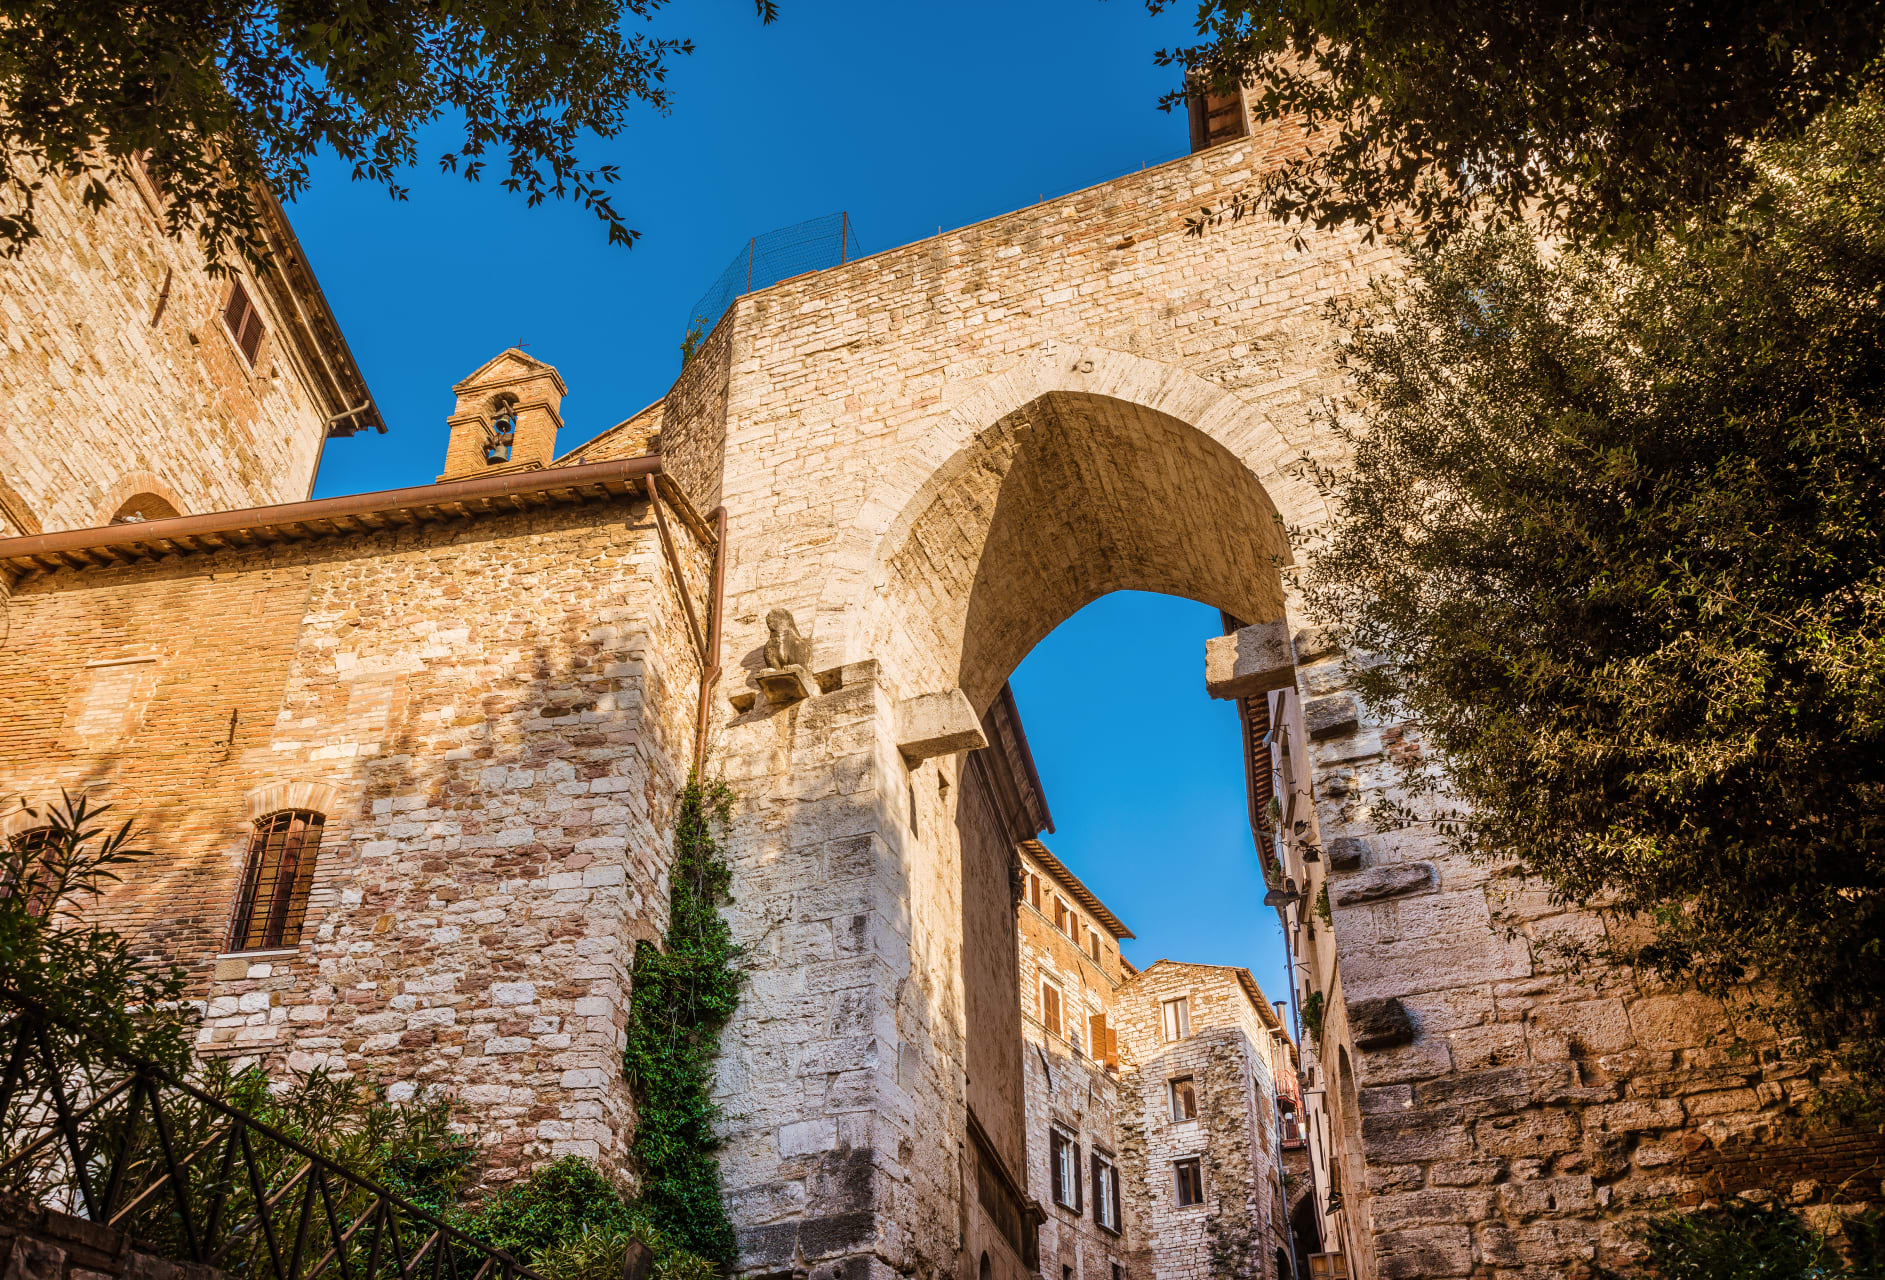 Perugia - Around the Etruscan Walls in 60 minutes